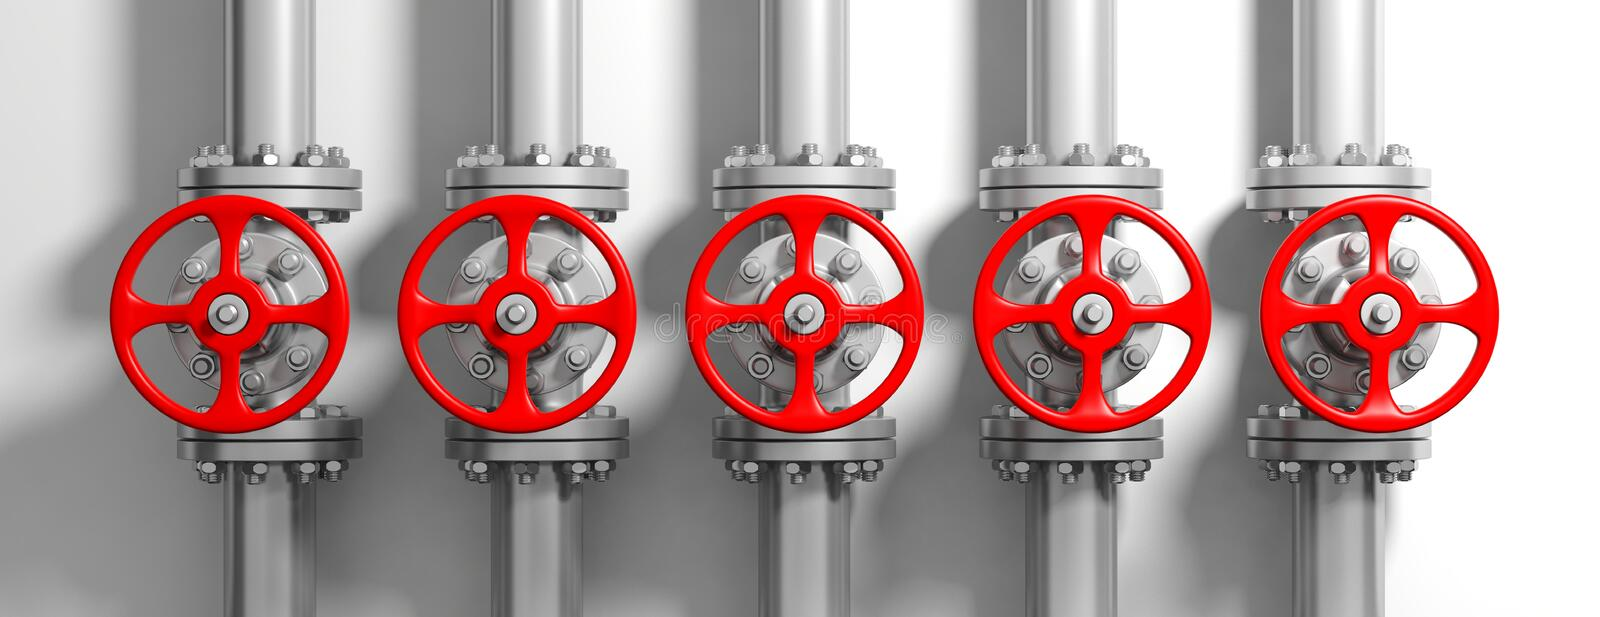 Industrial pipelines and valves on white wall background, banner. 3d illustration stock illustration